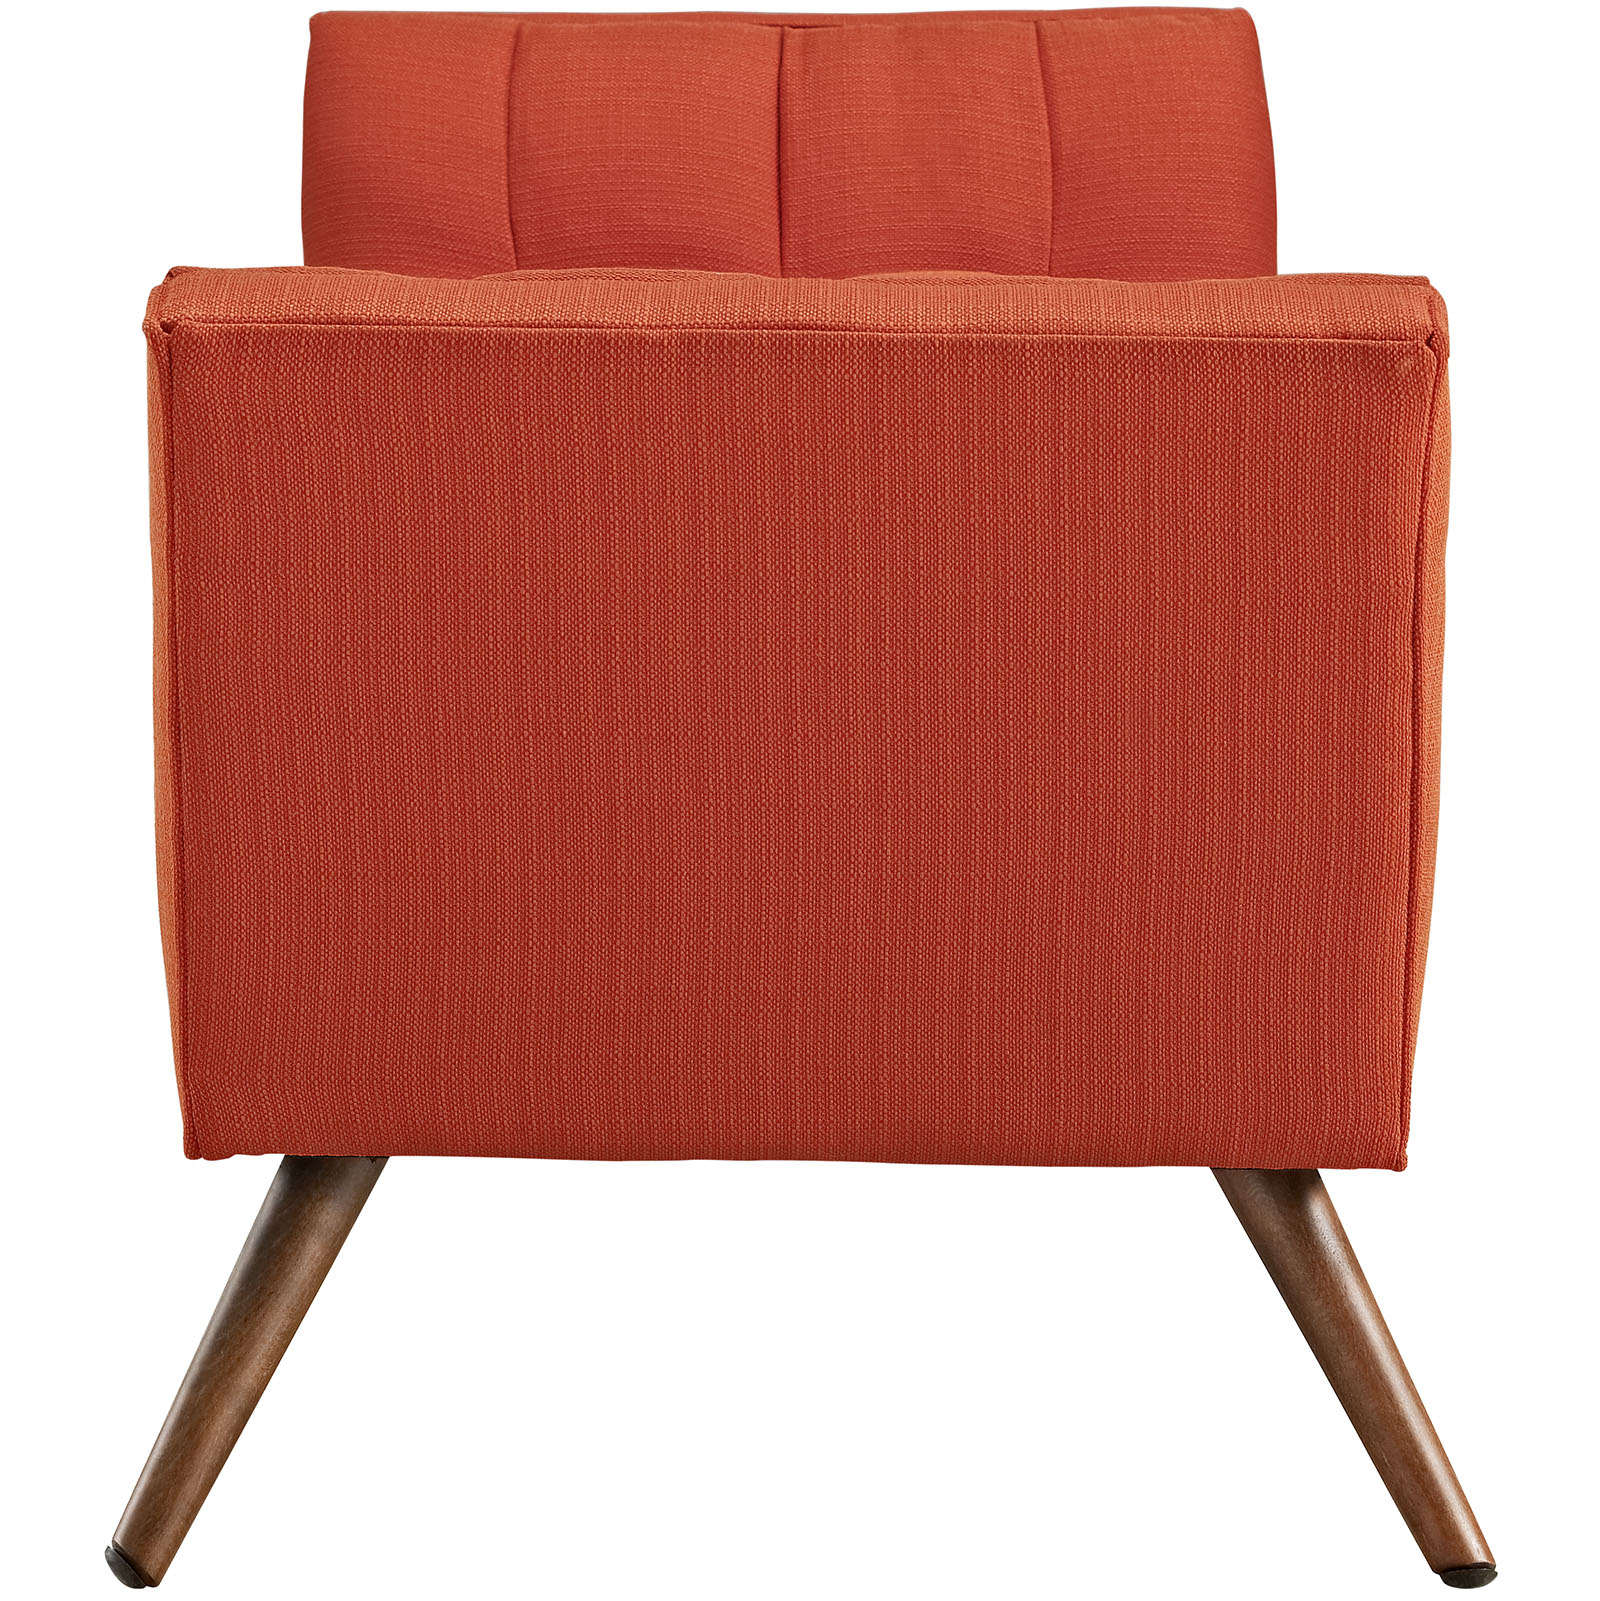 Red Orange Bench Medium 3